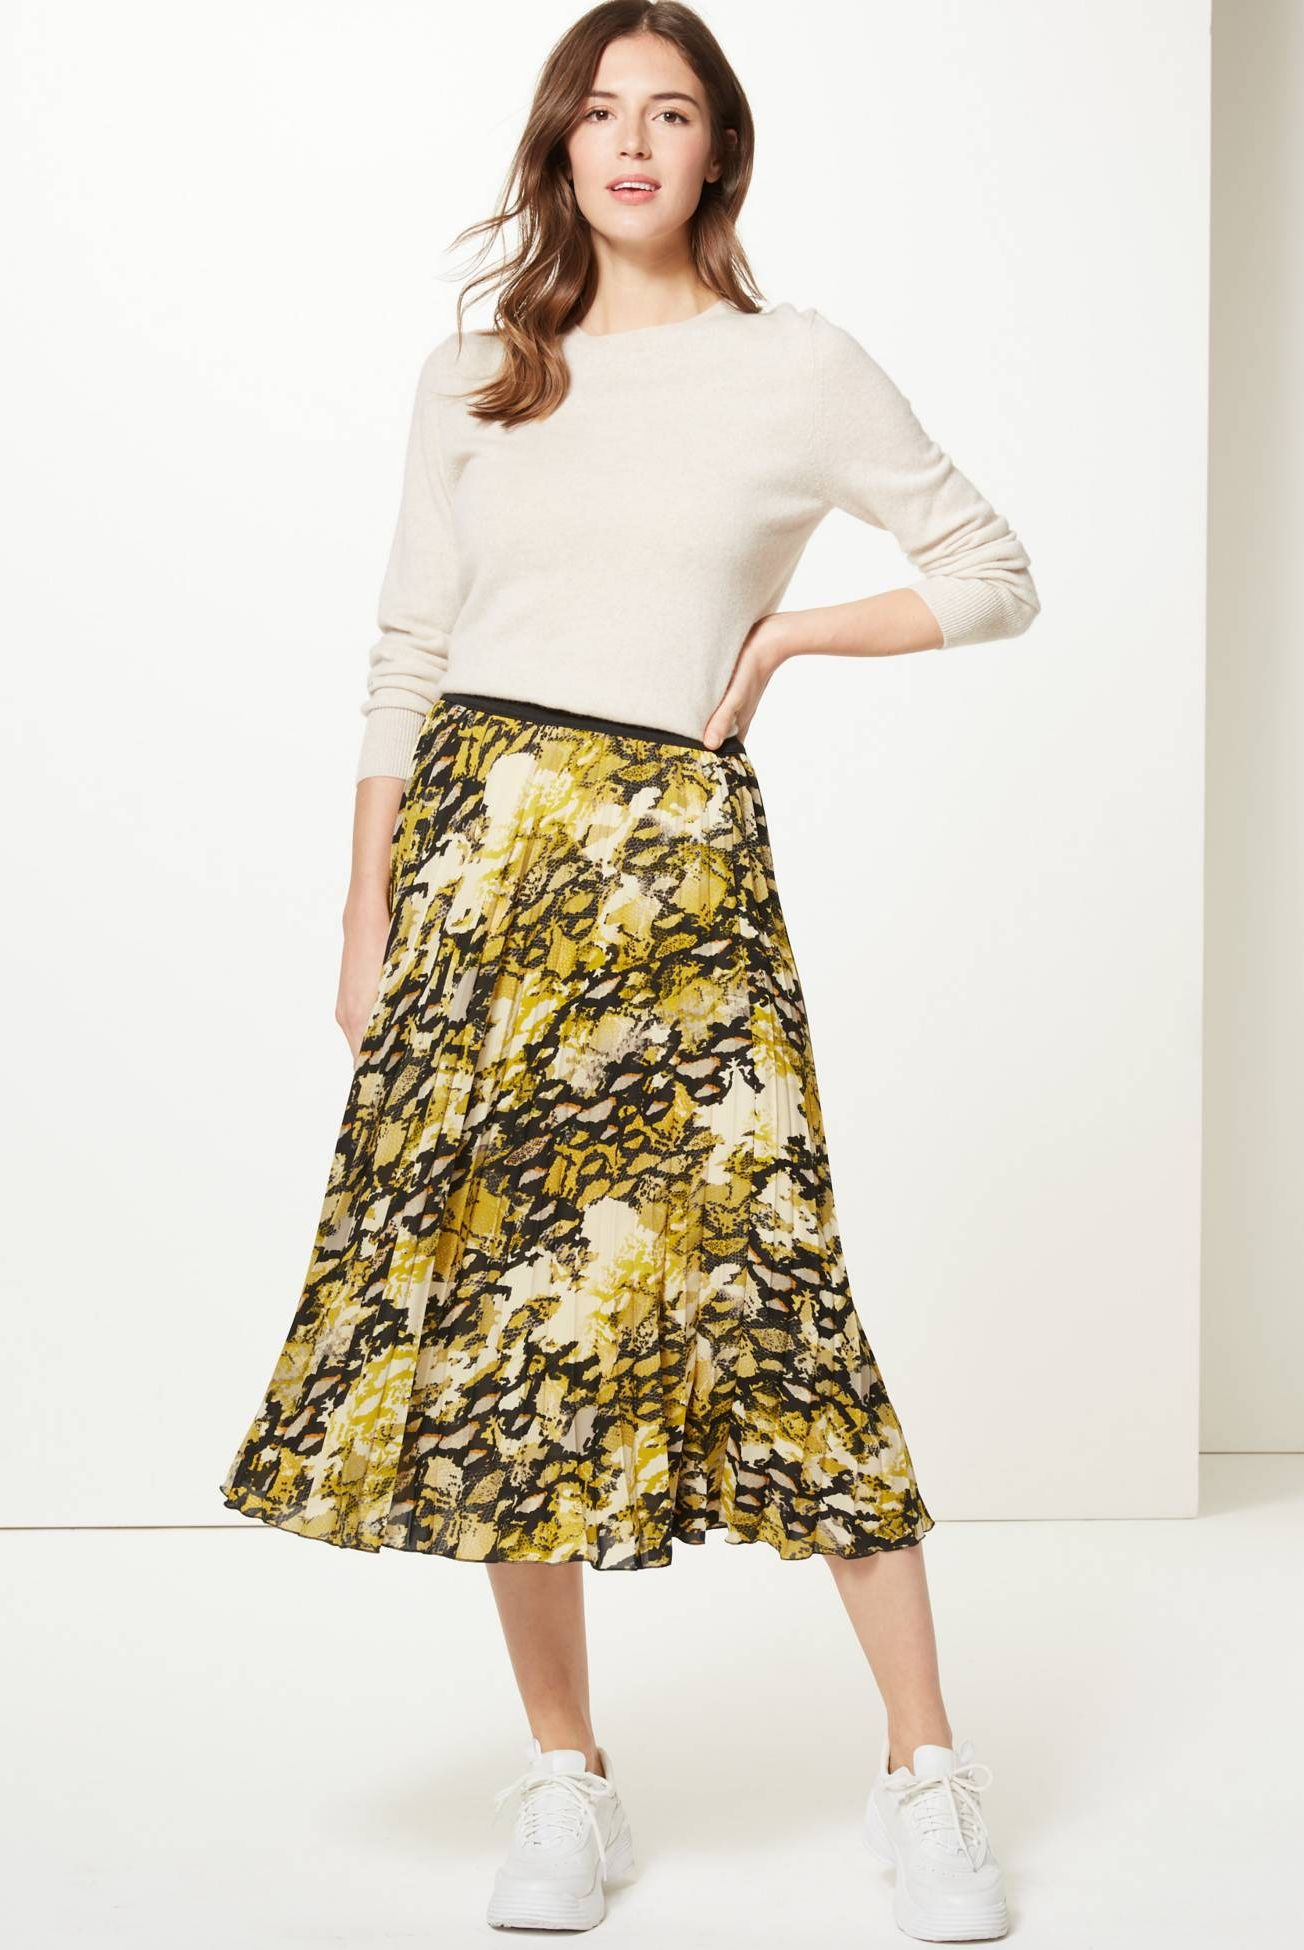 M&S spring skirts